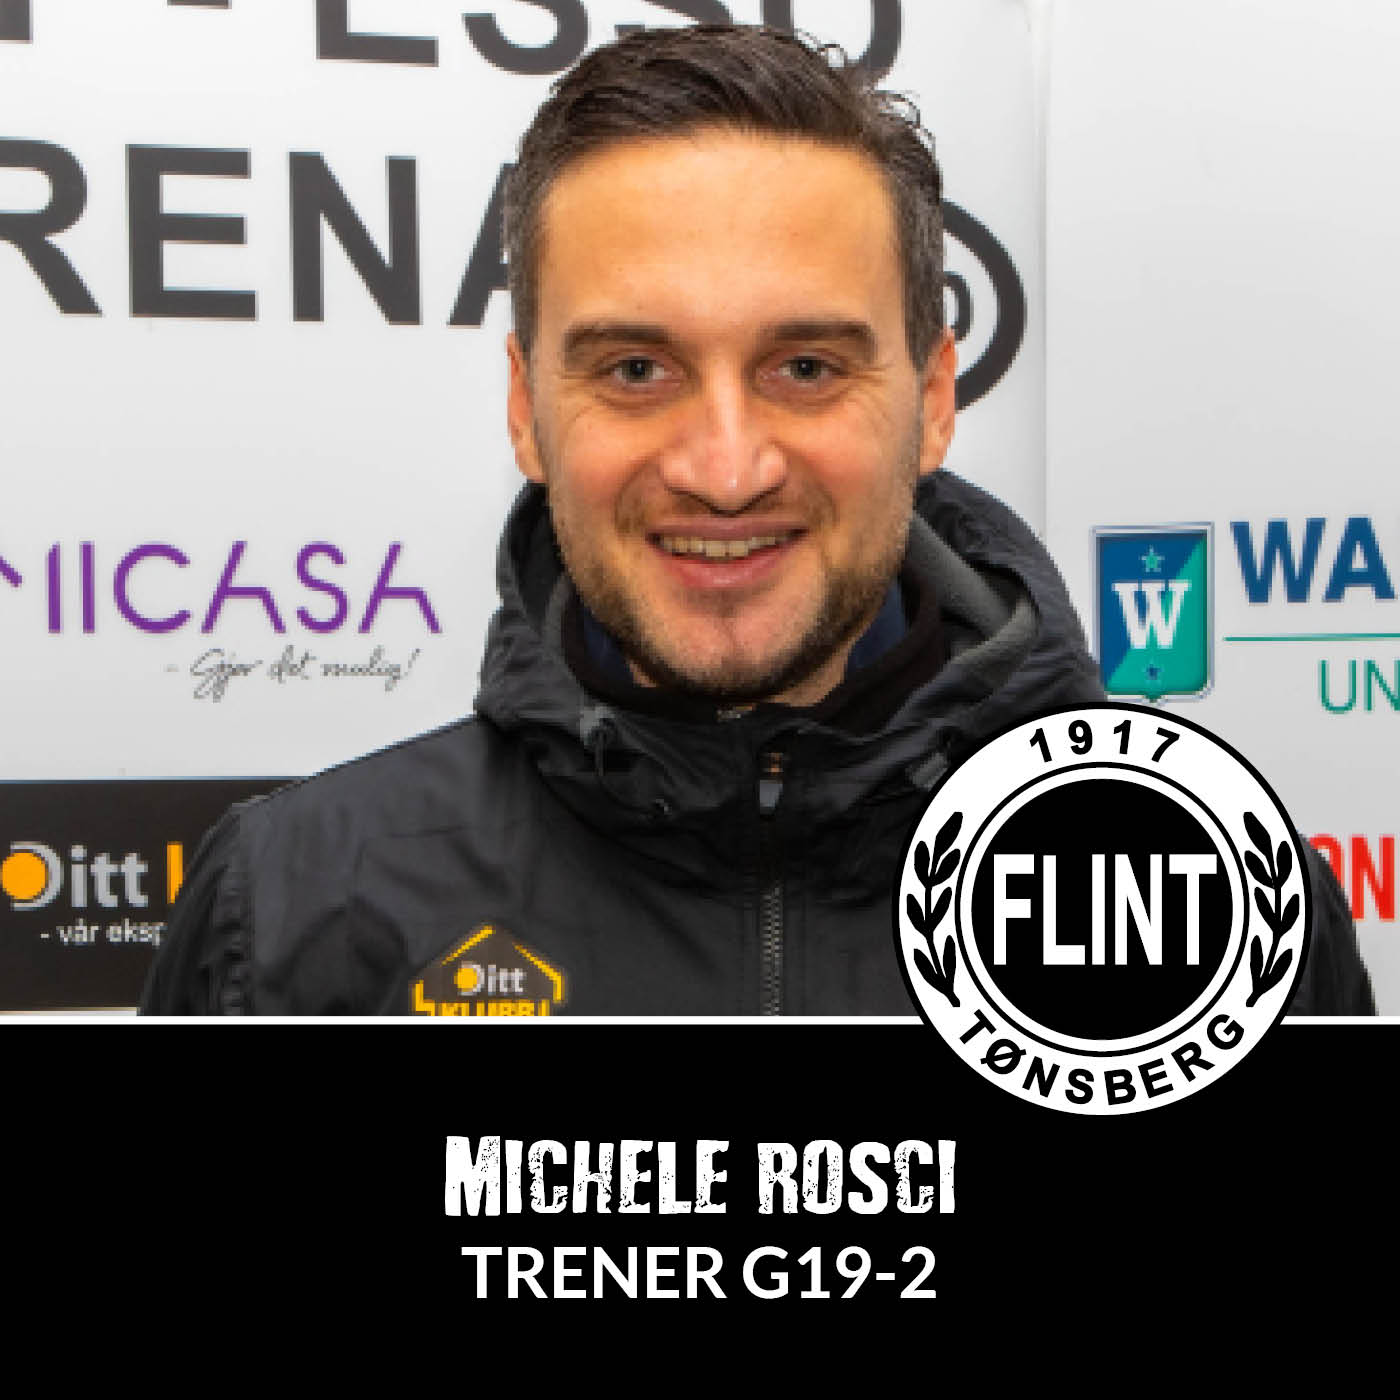 https://www.flintfotball.no/wp-content/uploads/2021/02/Trener-Michele-Rosci.jpg